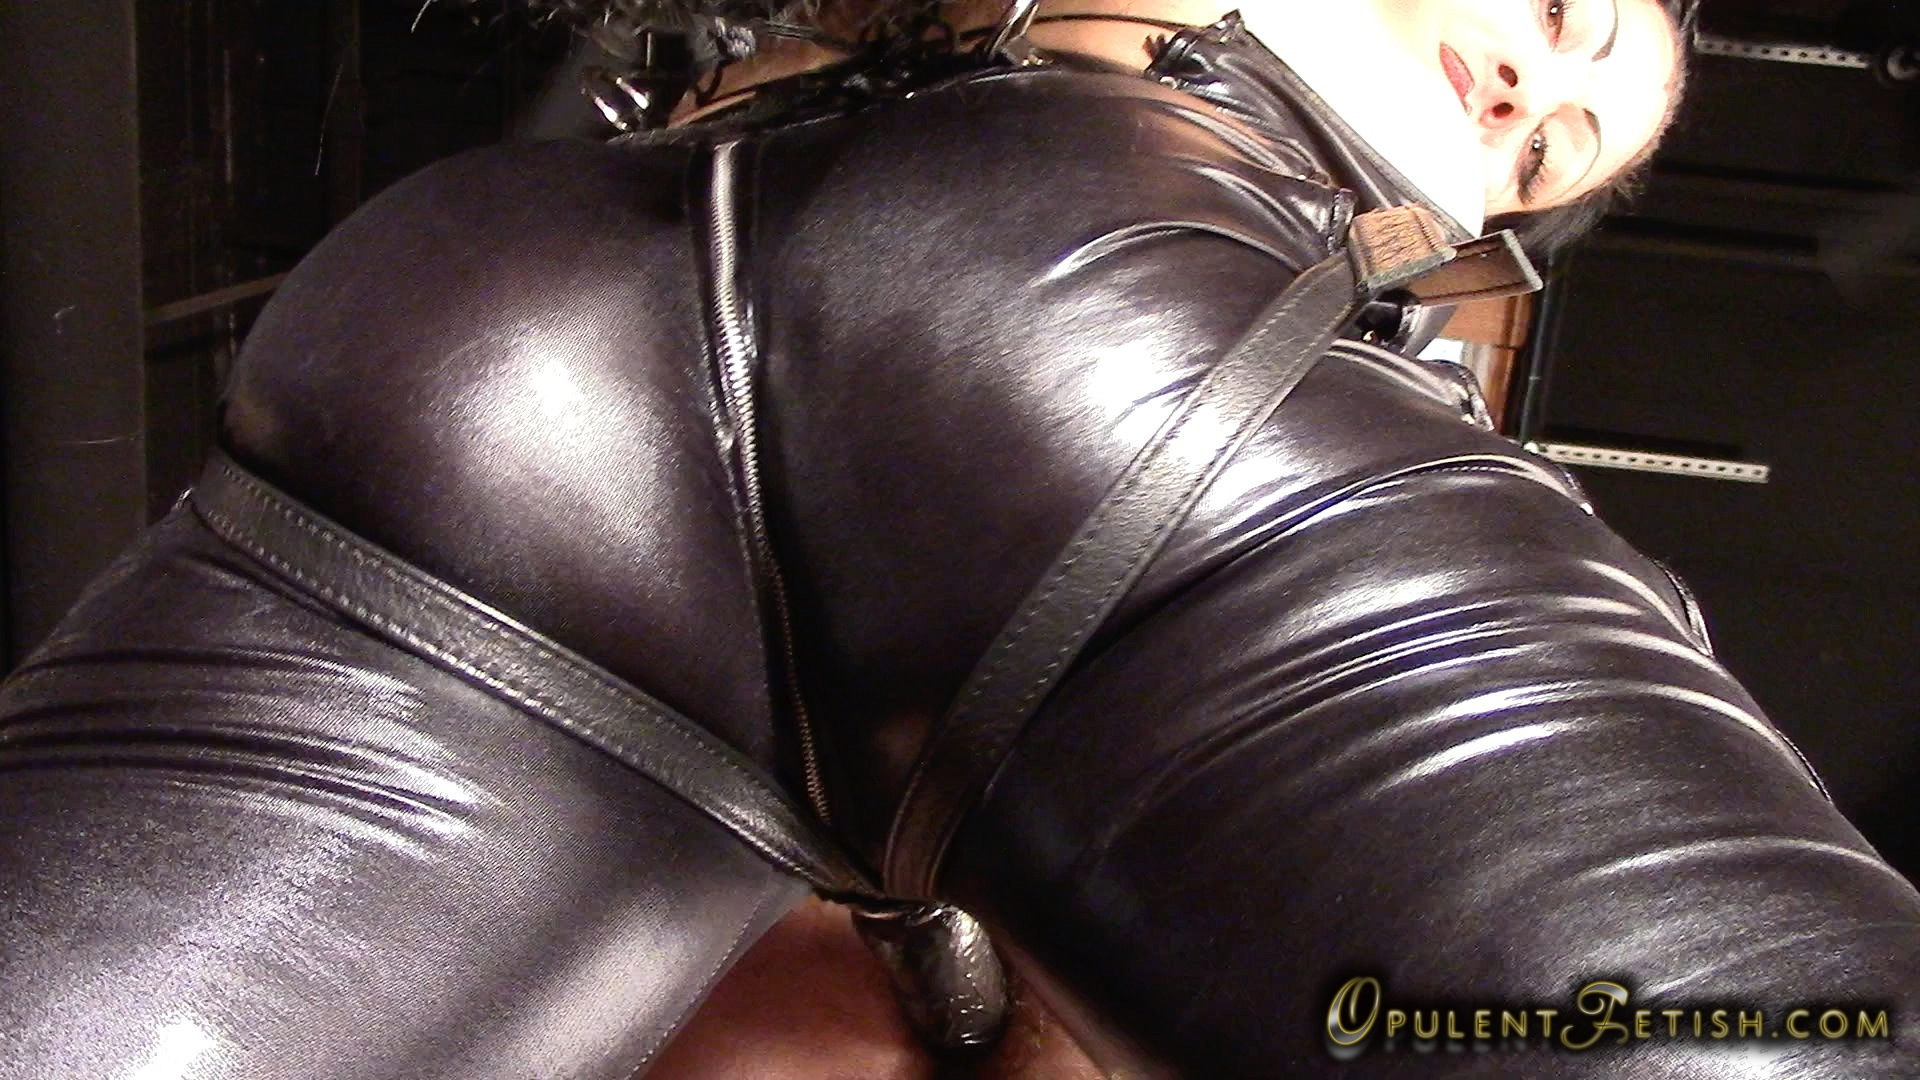 femdom city contribution gallery of opulent fetish gallery 17